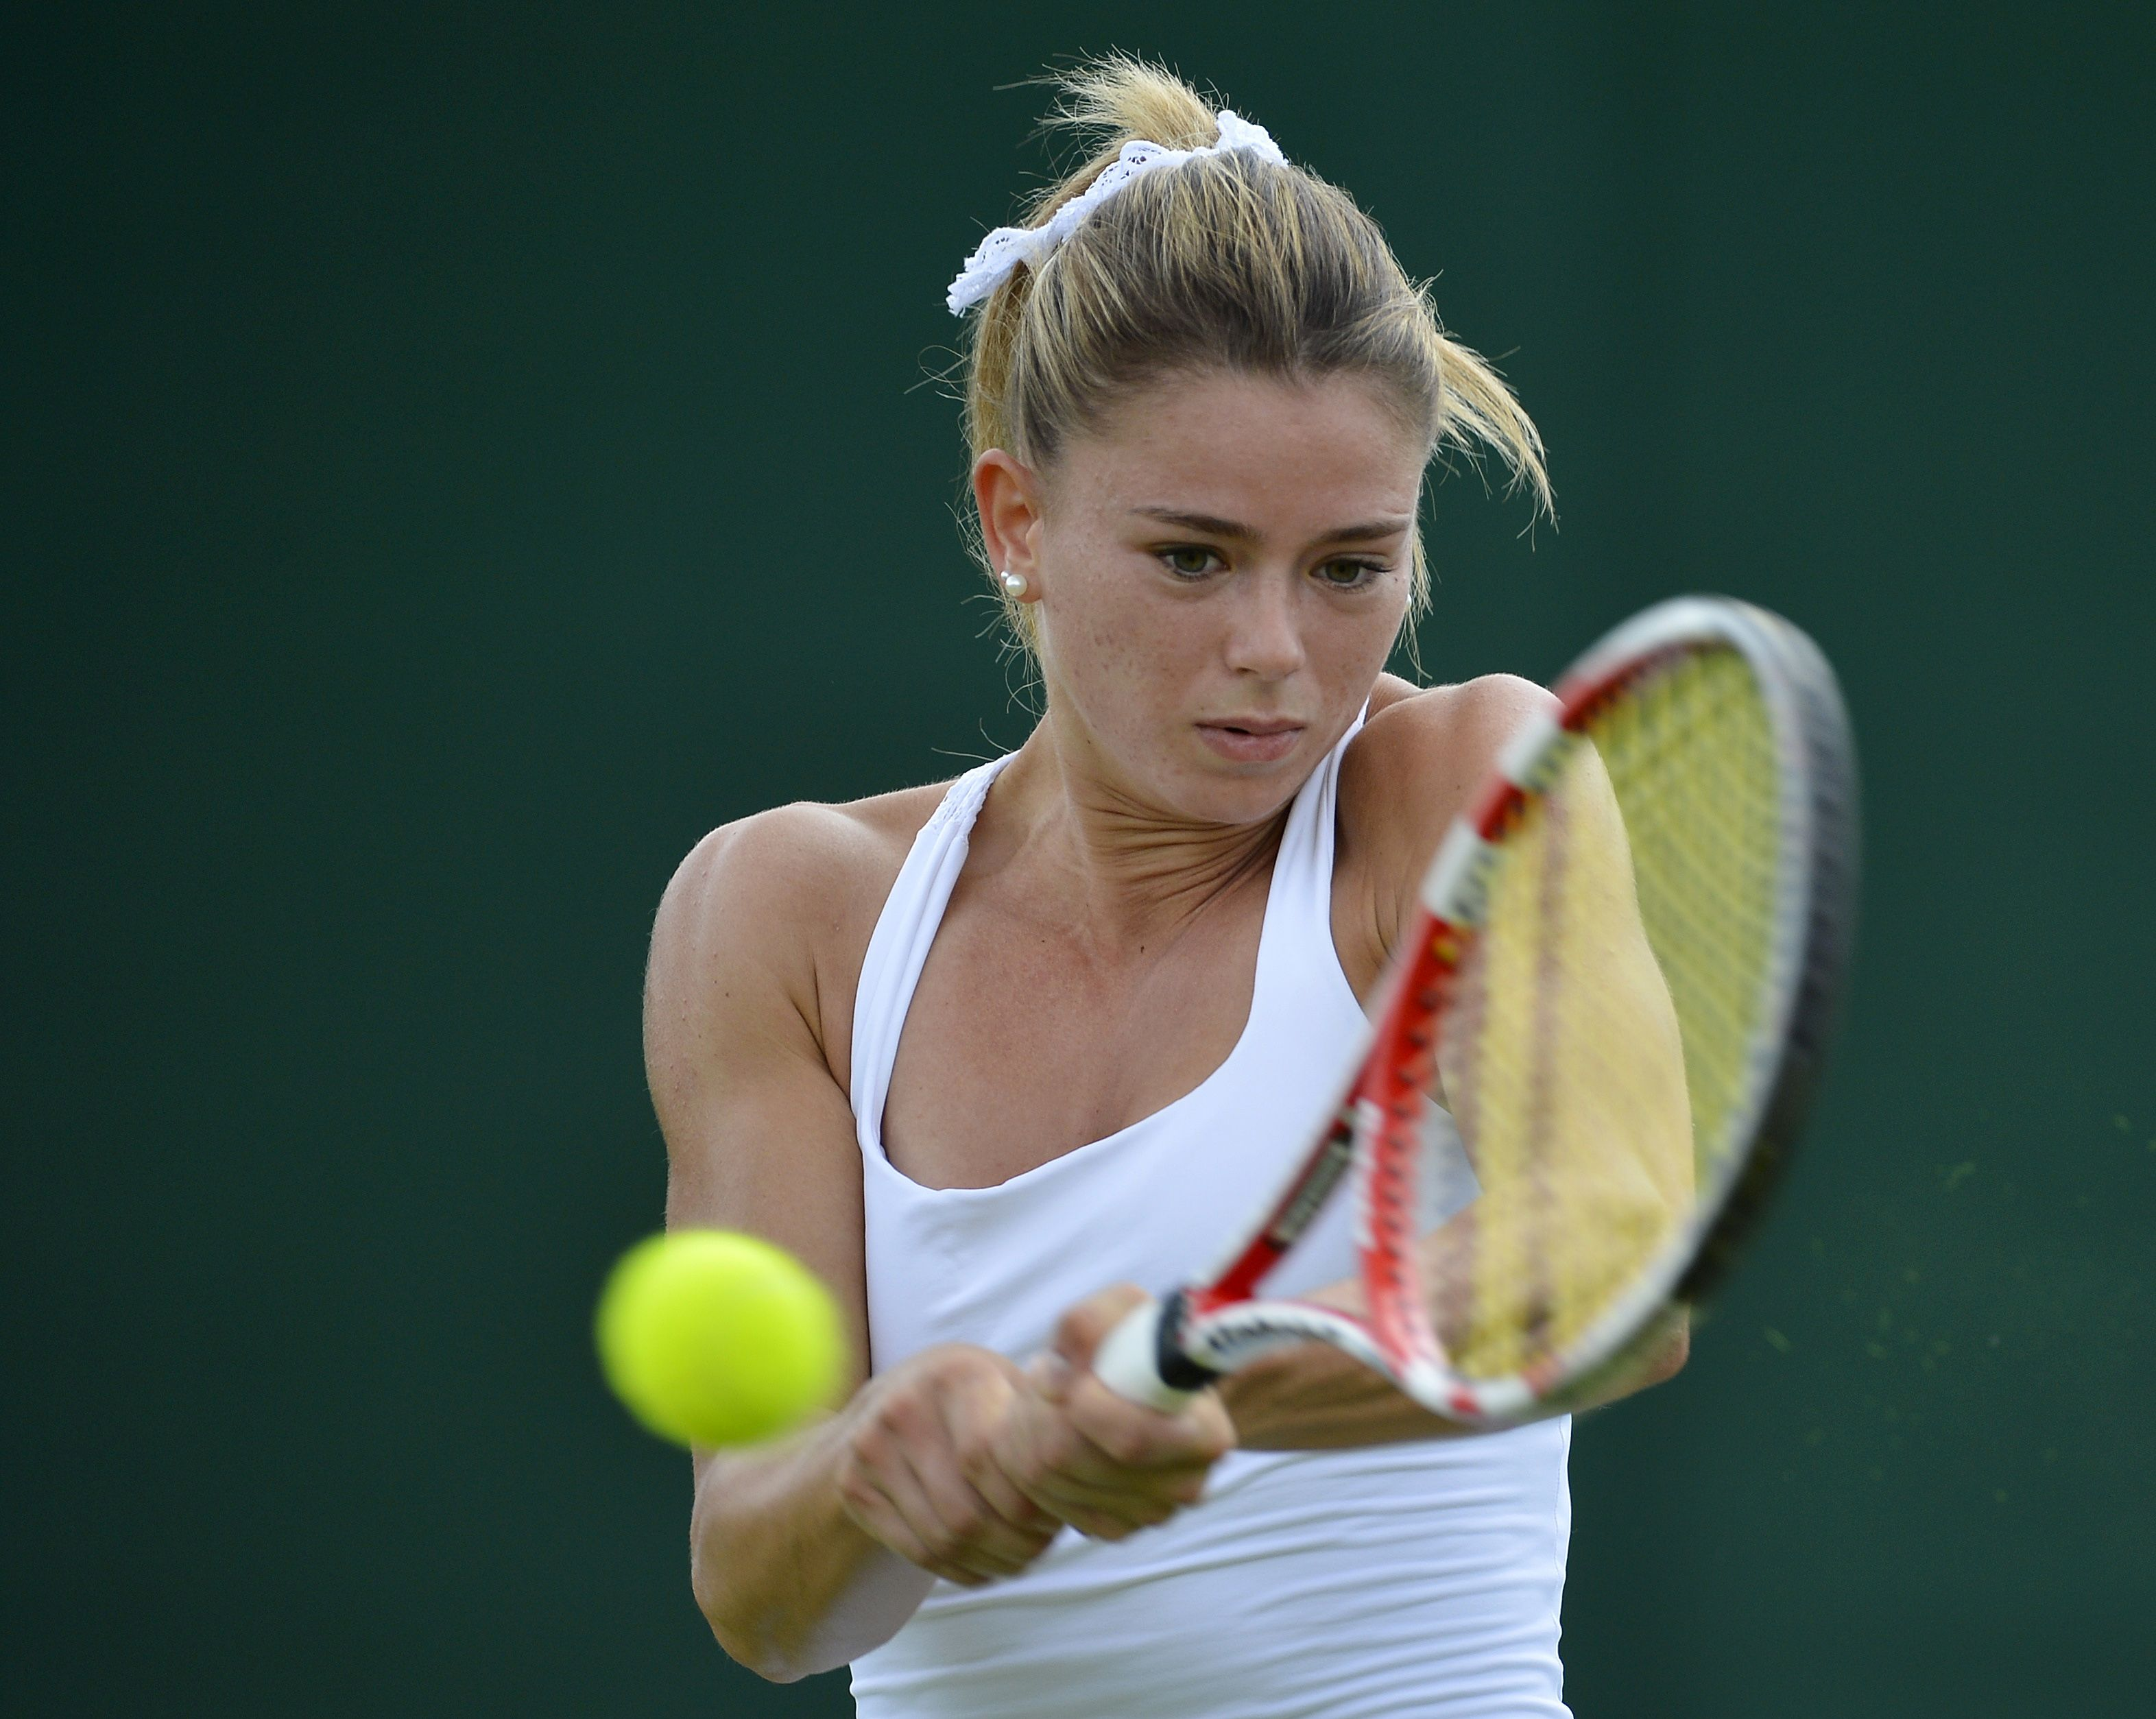 Camilia Giorgi Is An Italian Tennis Player Who Is One To Watch In 2014 At The 2014 Bnp Paribas Open Giorgi Beat Ma Tennis Players Female Tennis Camila Giorgi